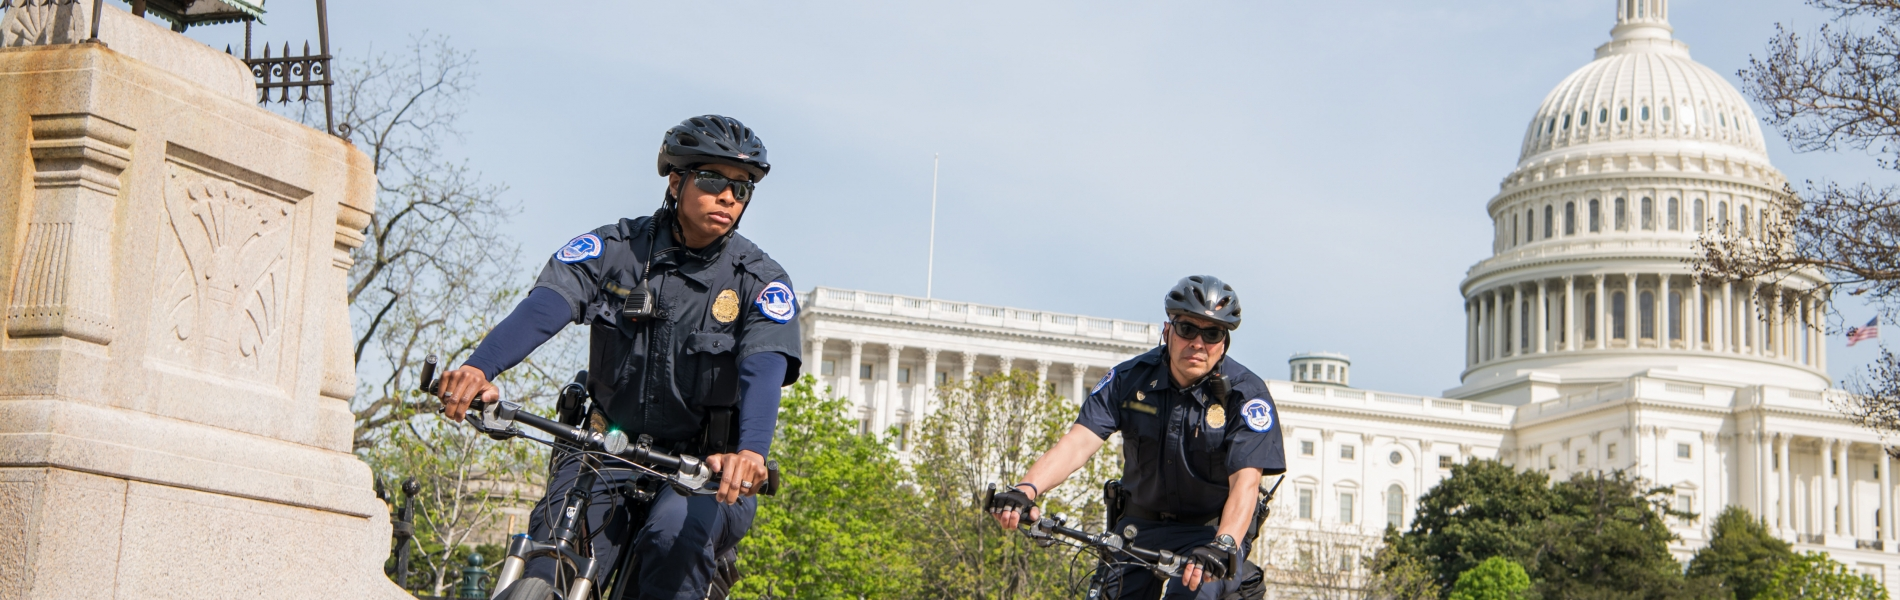 United States Capitol Police | Protect and Secure Congress